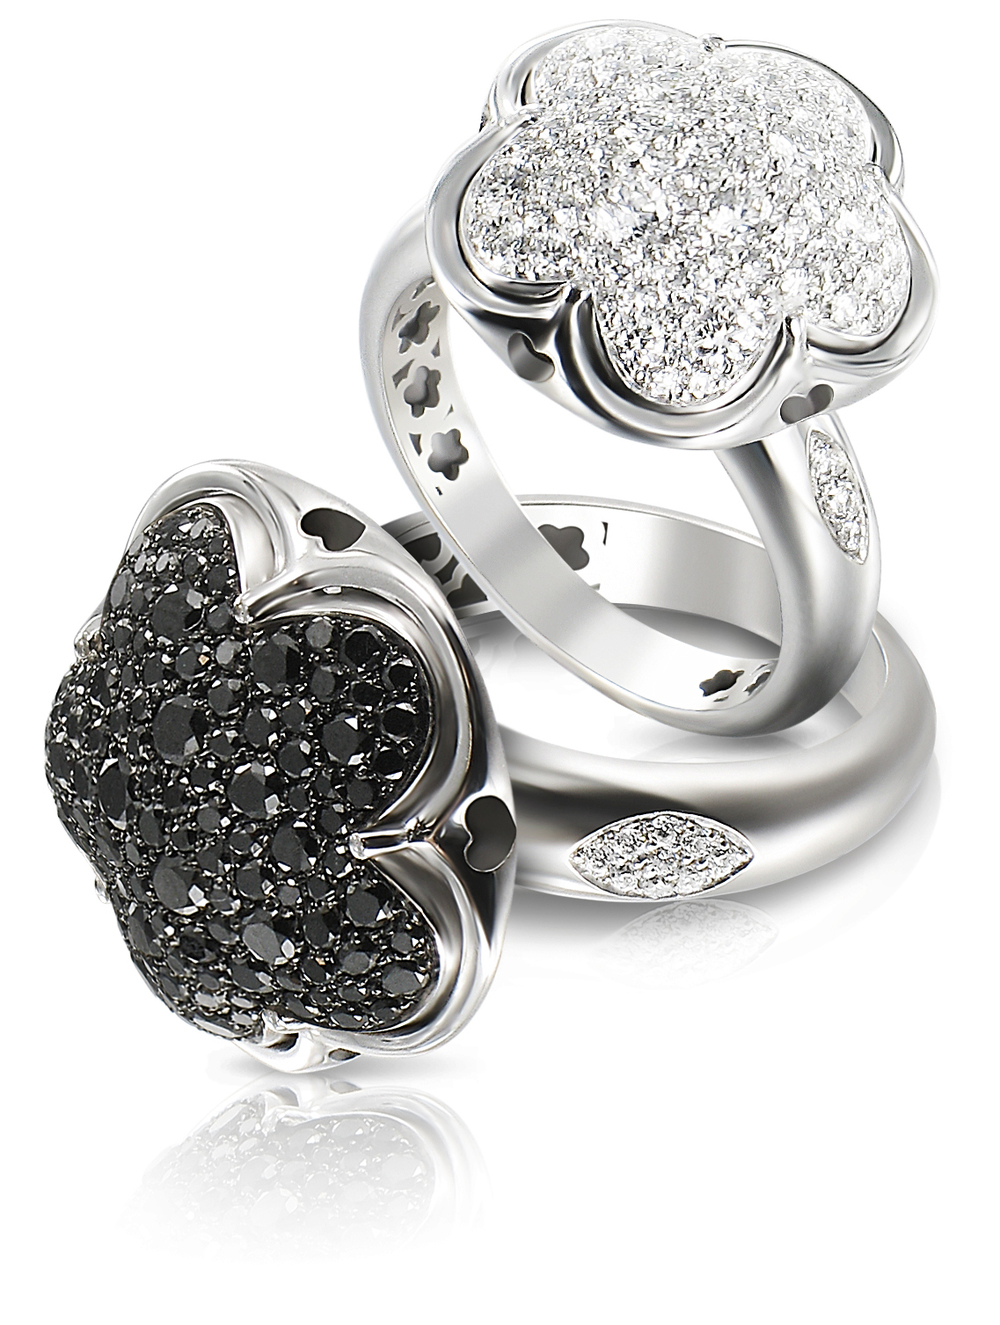 Bon Ton-rings_black and white diamonds.jpg